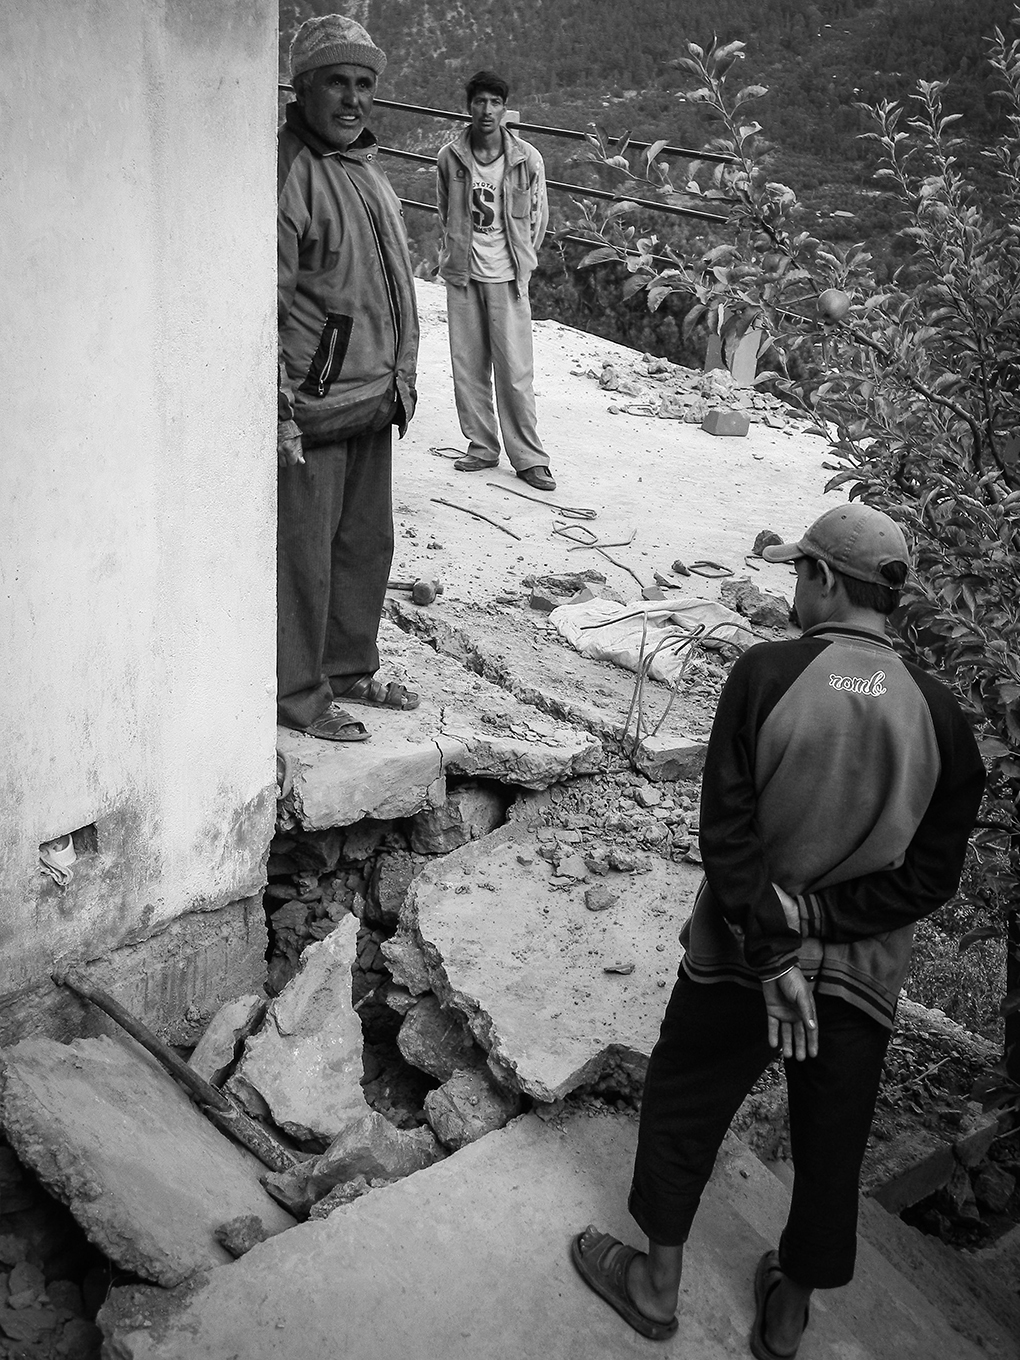 House damaged due to slope failure in Pangi village, affected by Kashang stage 1 hydroelectricity project in Kinnaur, Himachal Pradesh